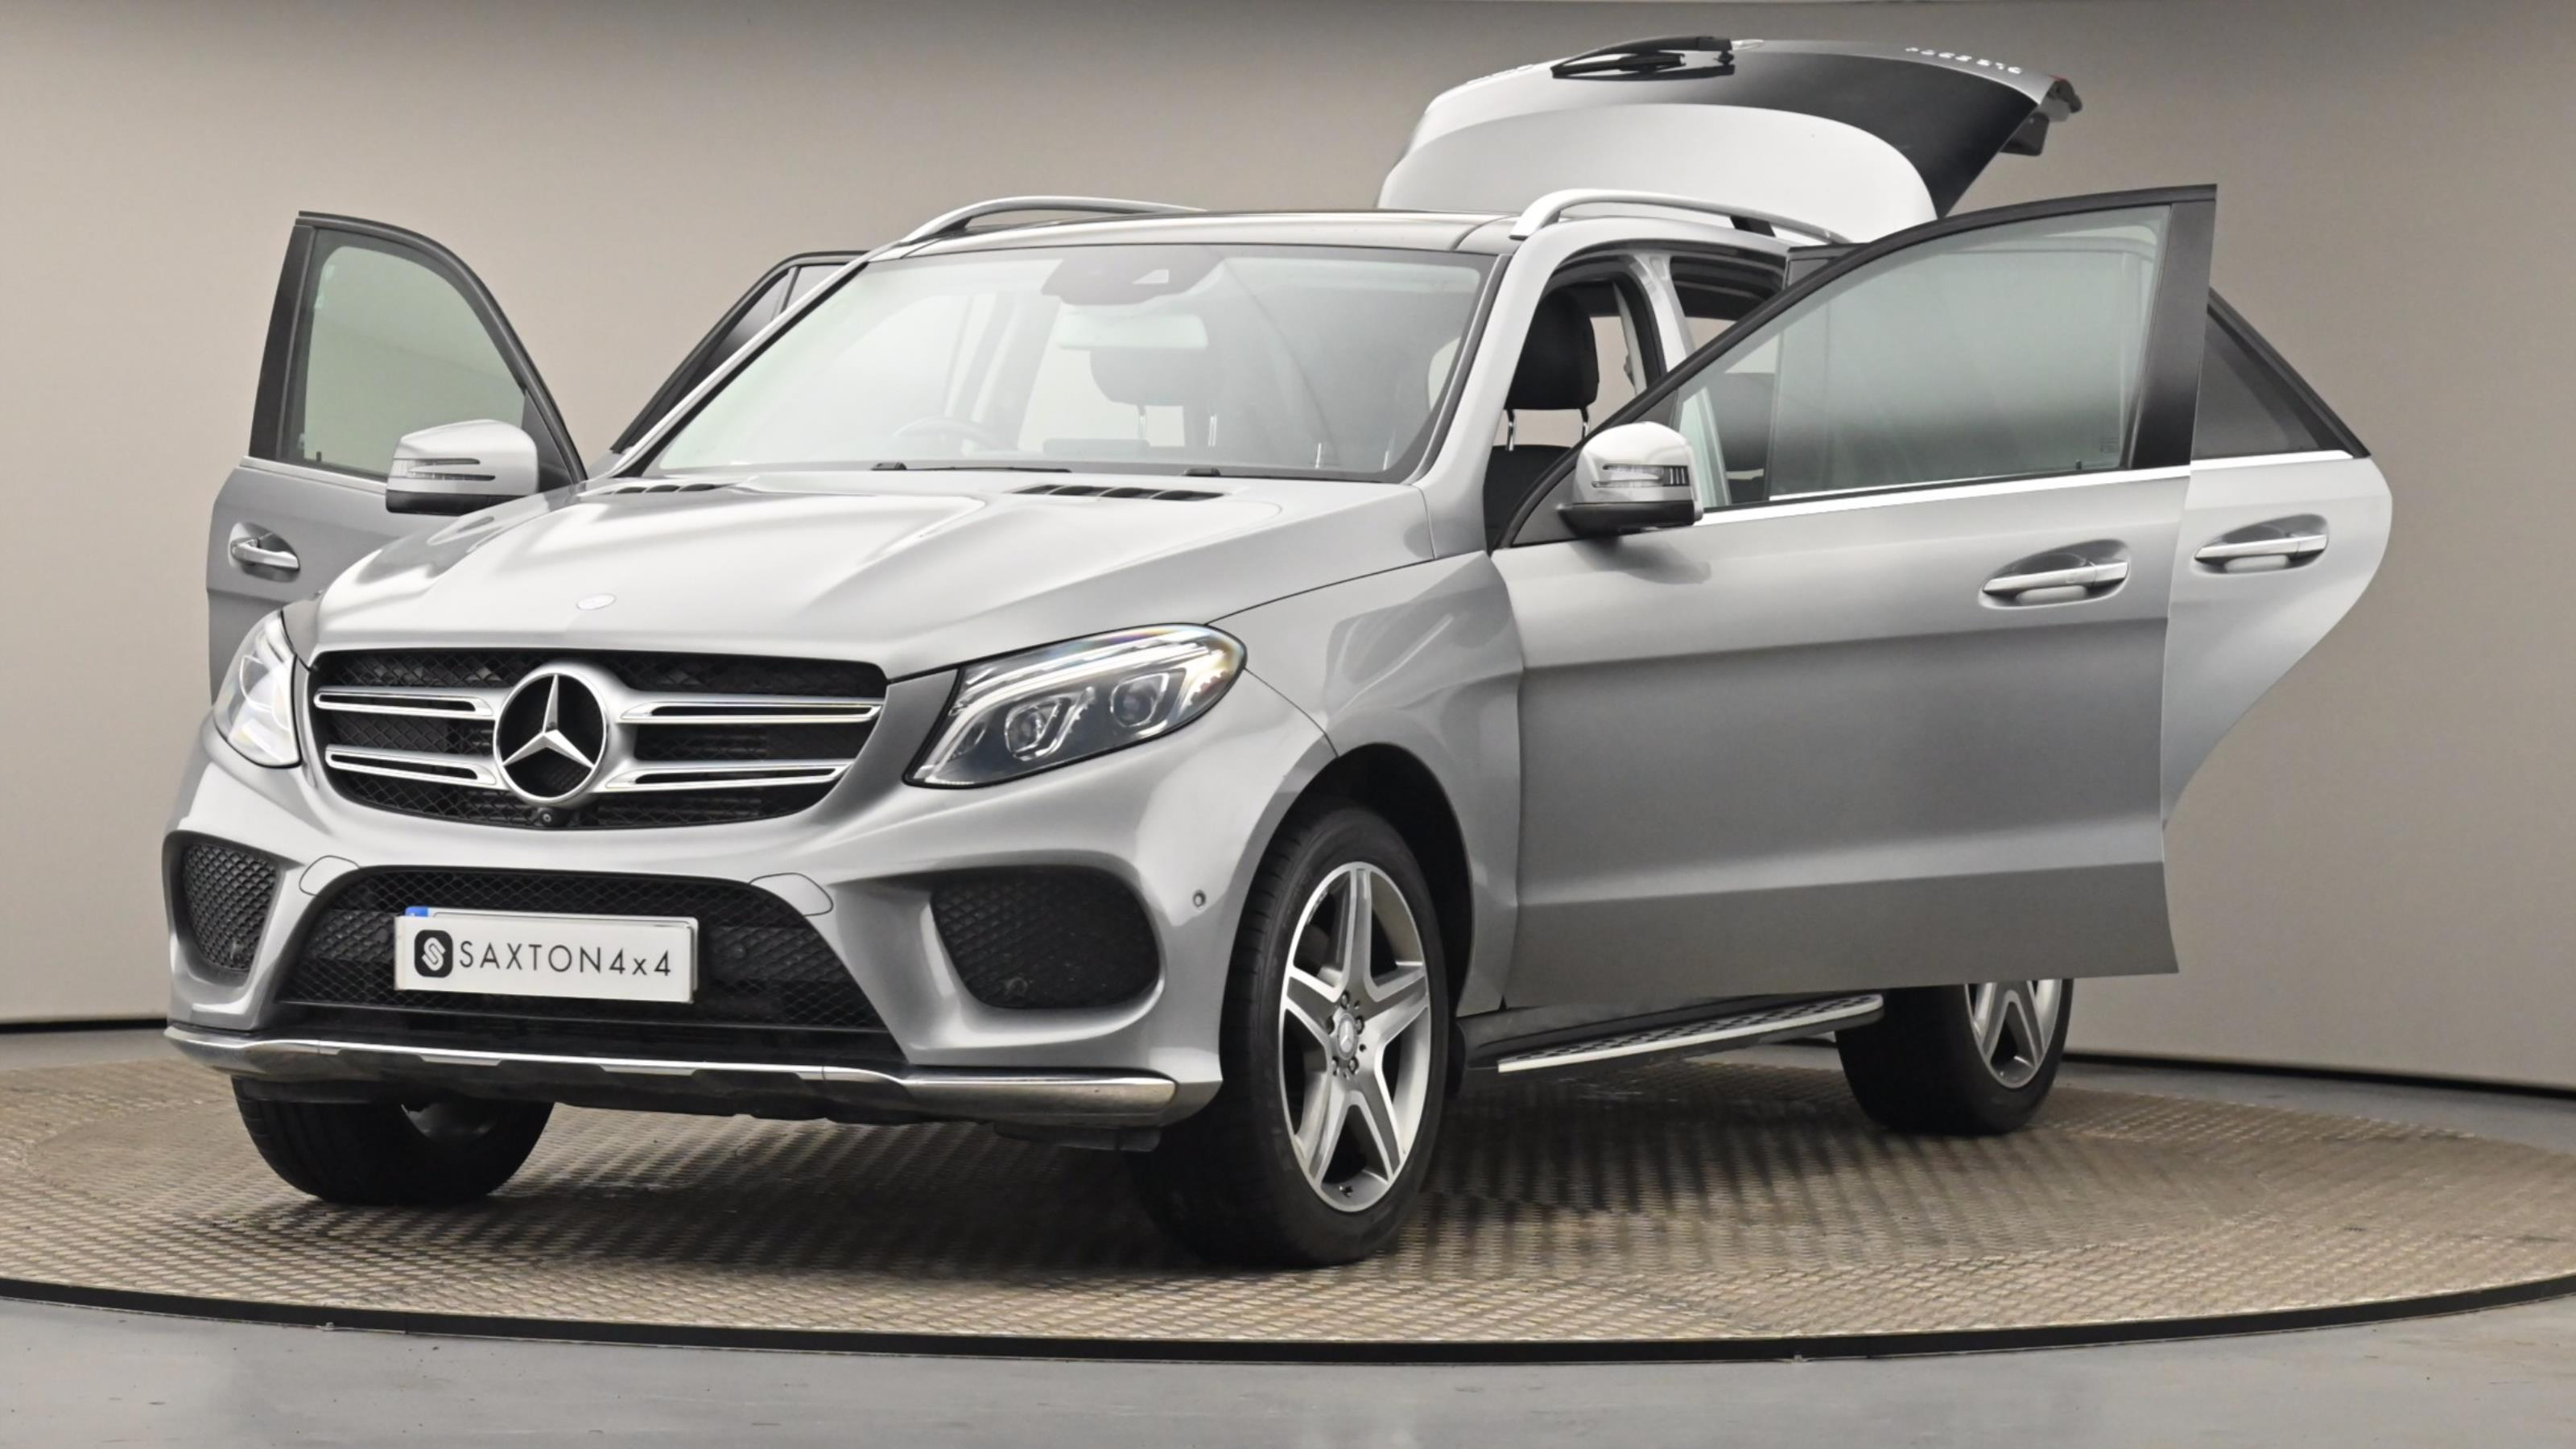 Used 2016 Mercedes-Benz GLE GLE 350d 4Matic AMG Line Prem Plus 5dr 9G-Tronic SILVER at Saxton4x4